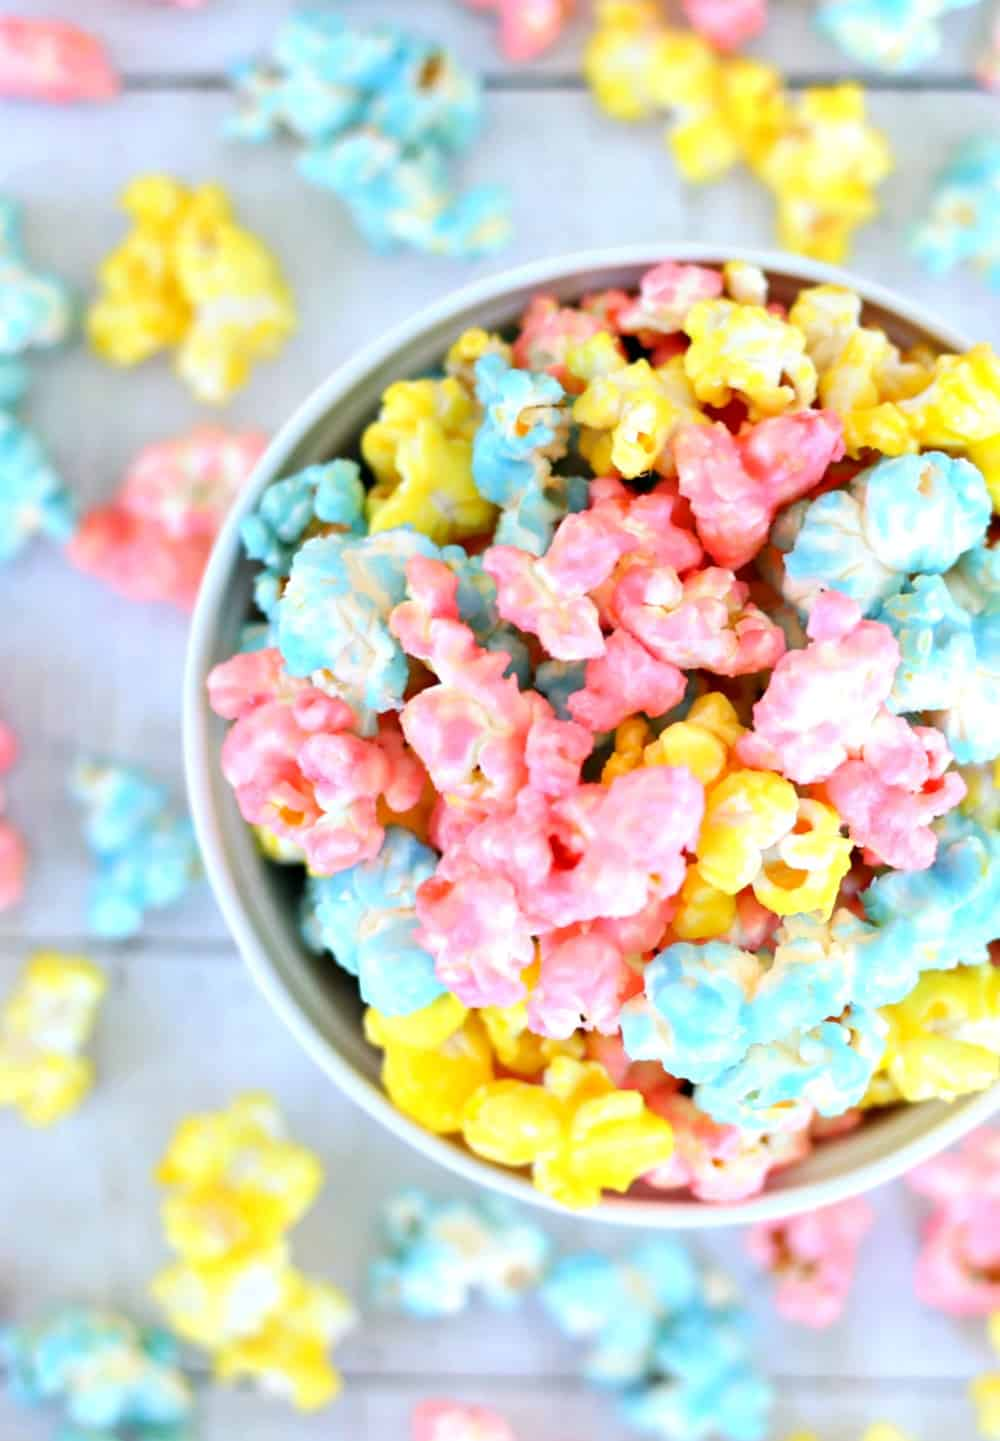 https://www.happygoluckyblog.com/wp-content/uploads/2018/01/Candy-Popcorn-3.jpg